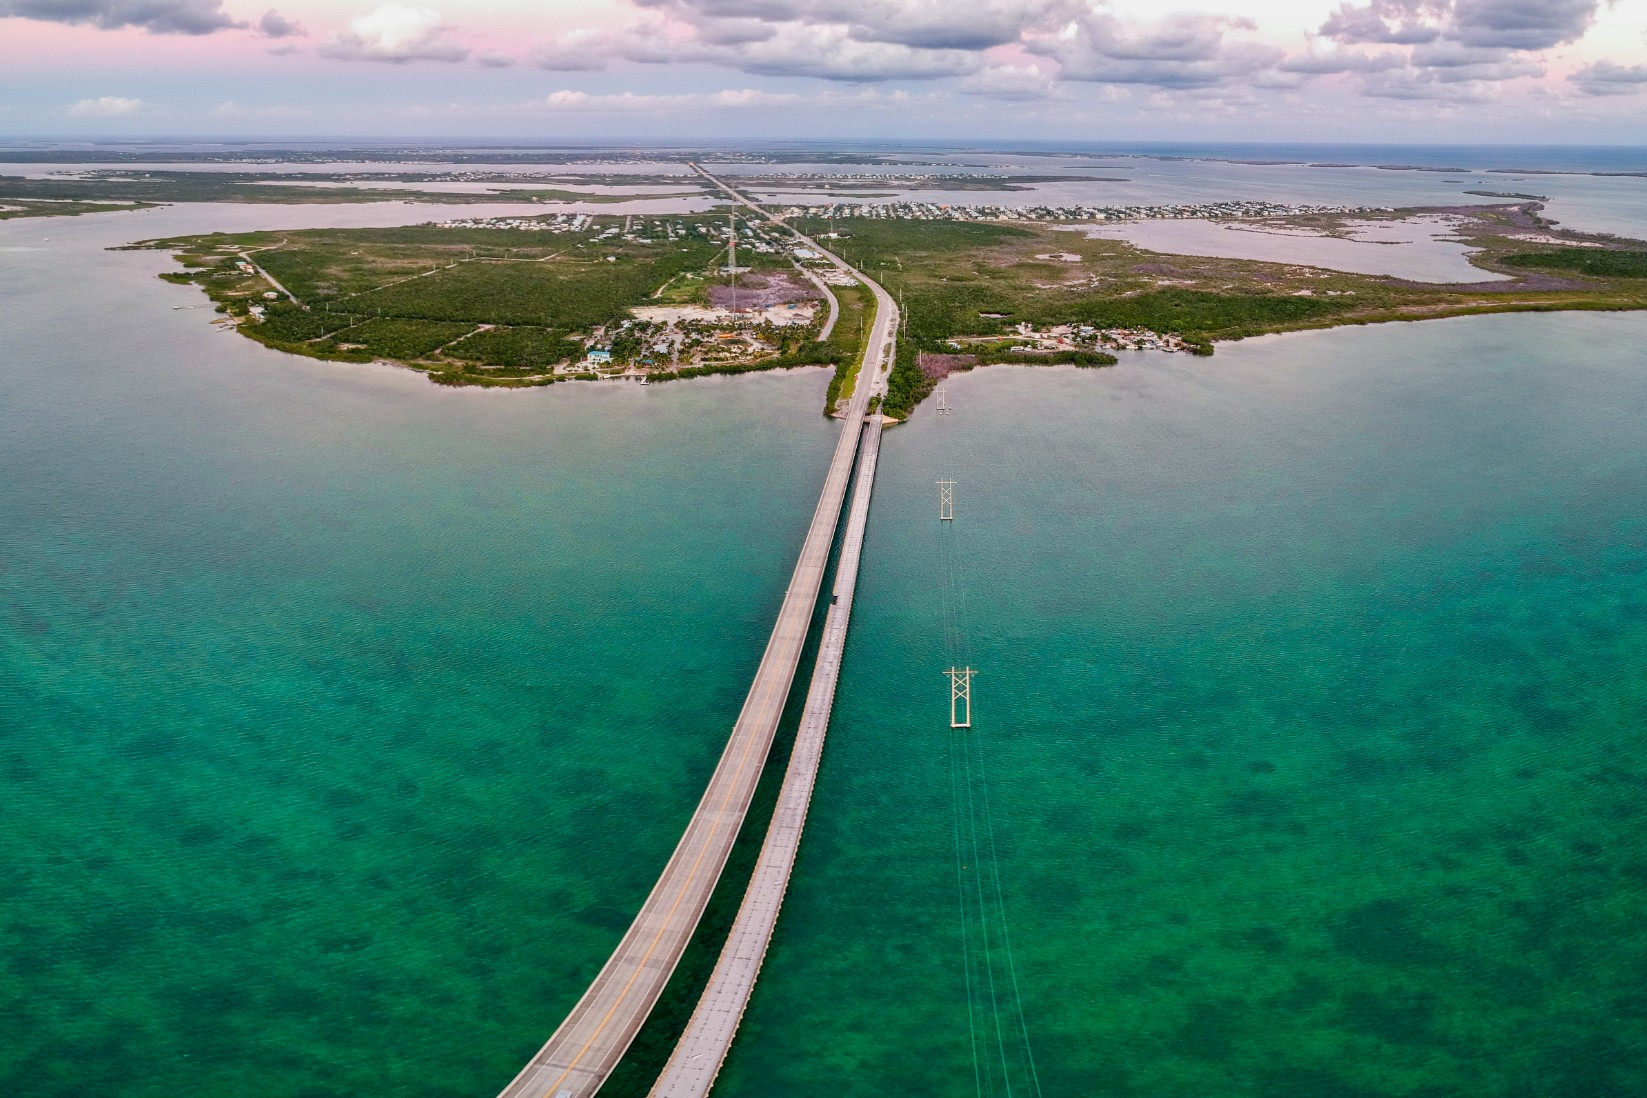 Road 1 to Key West in Florida, USA